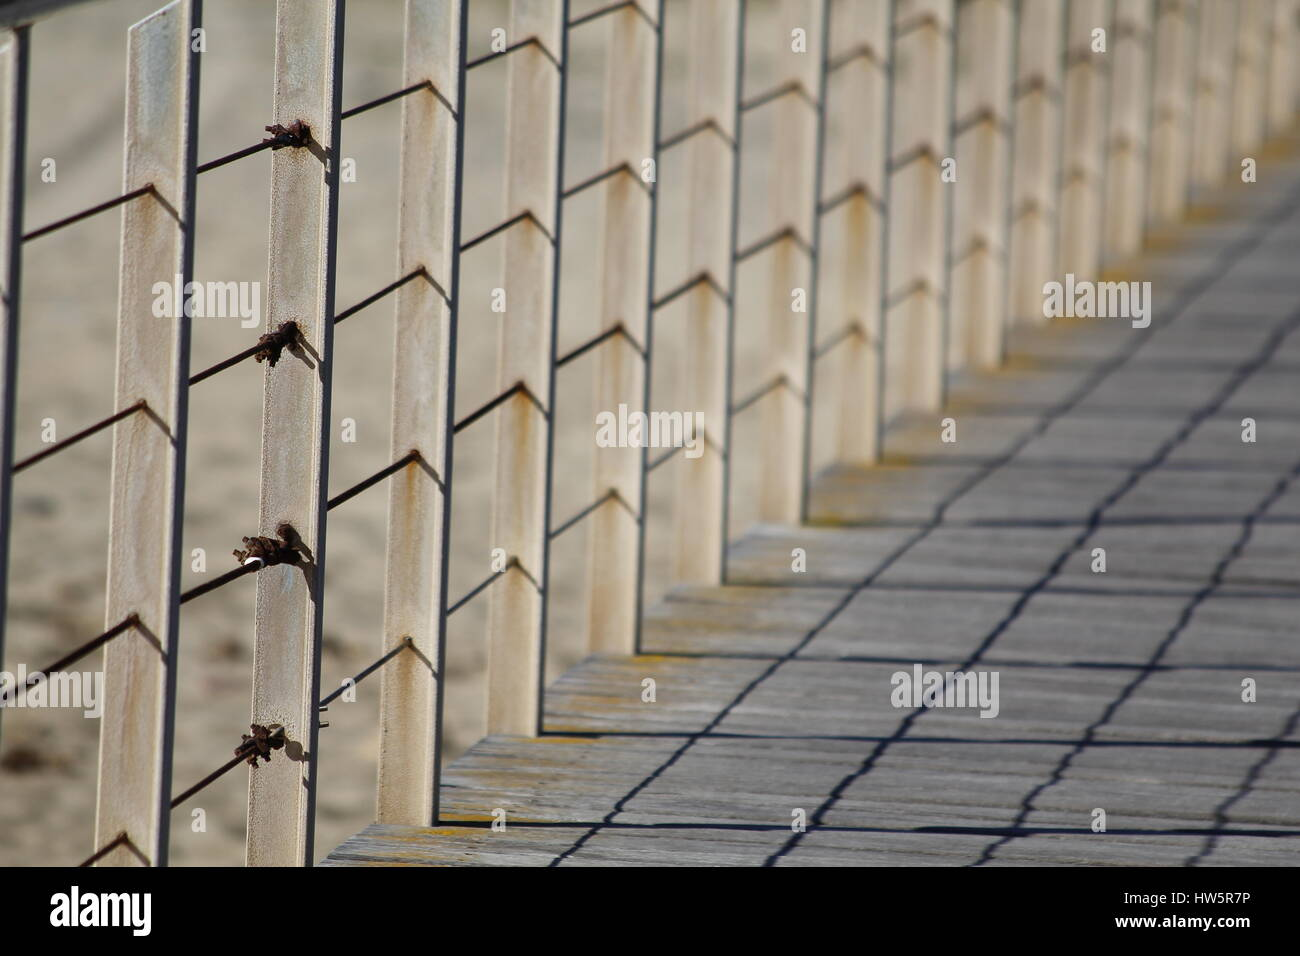 Vanishing point in a railing, outdoors - Stock Image